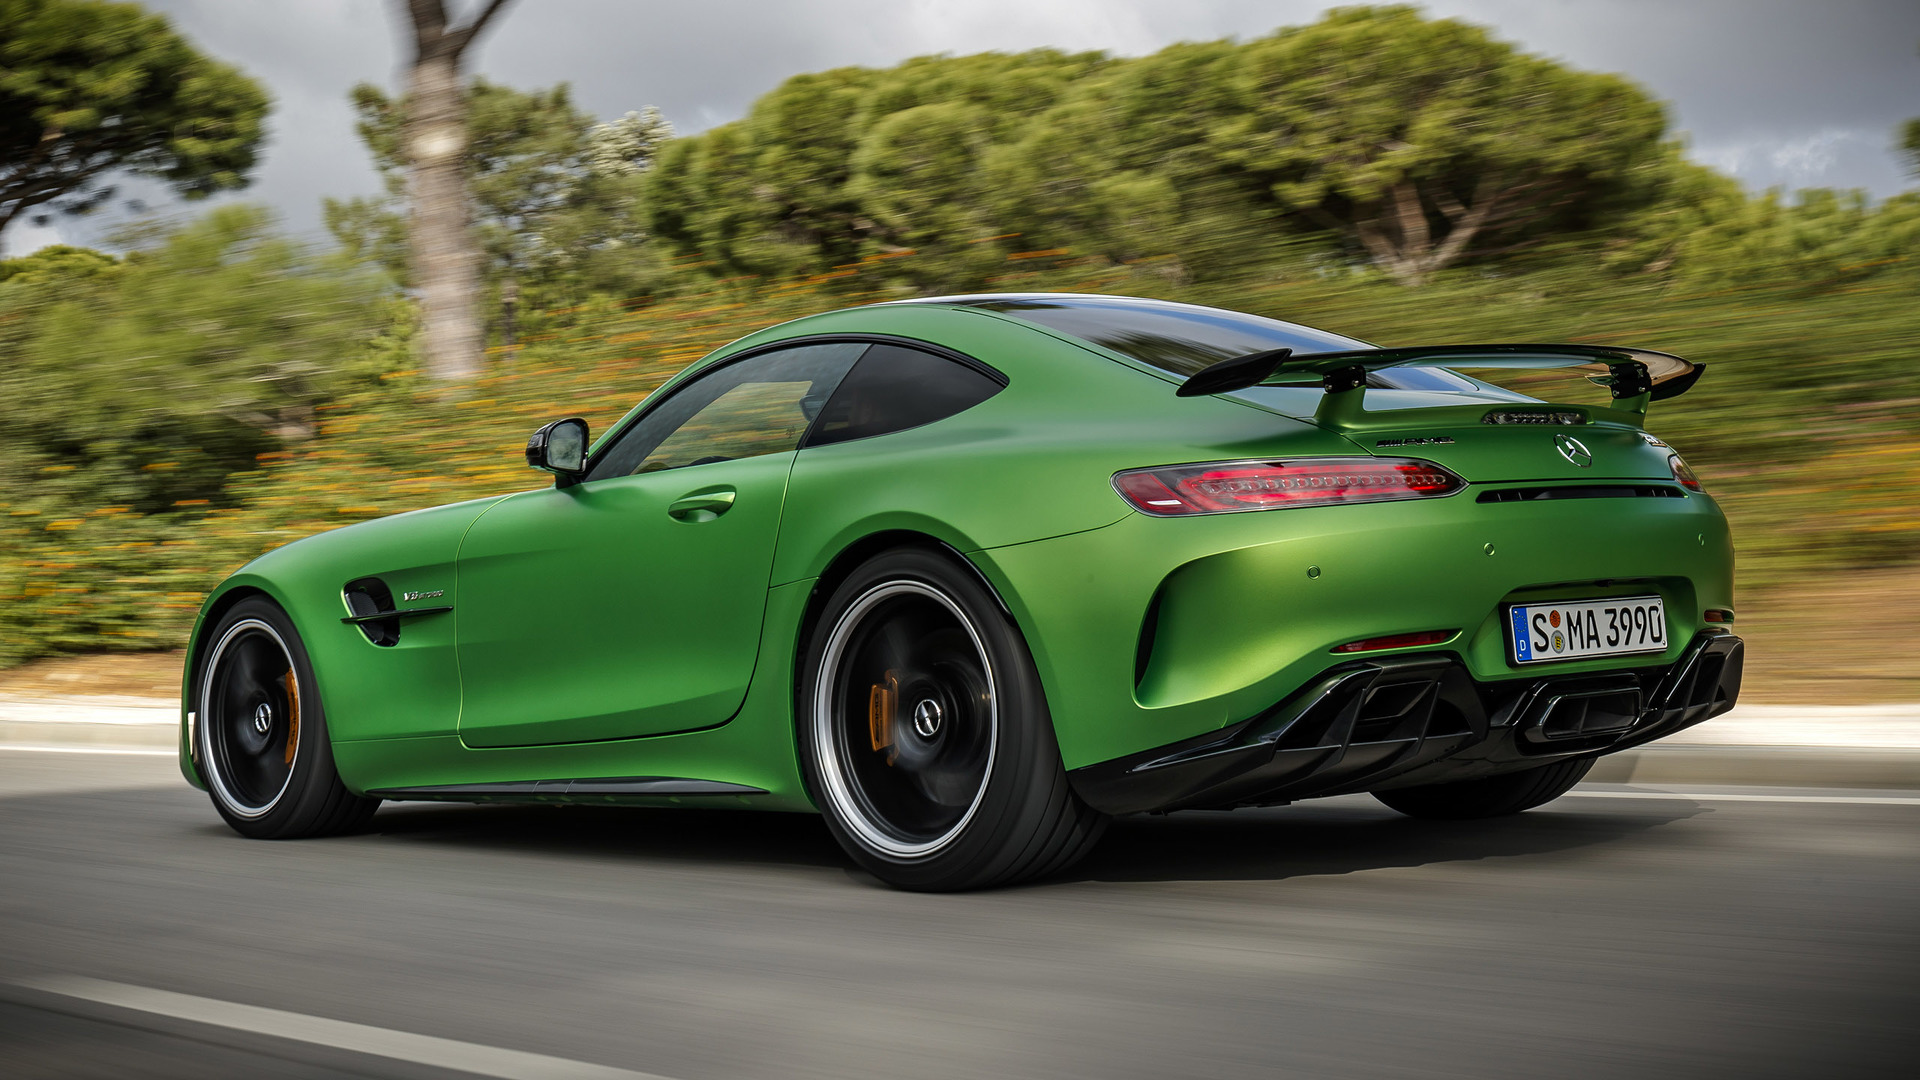 Mercedes Benz Amg Gt R Photos Photogallery With 22 Pics